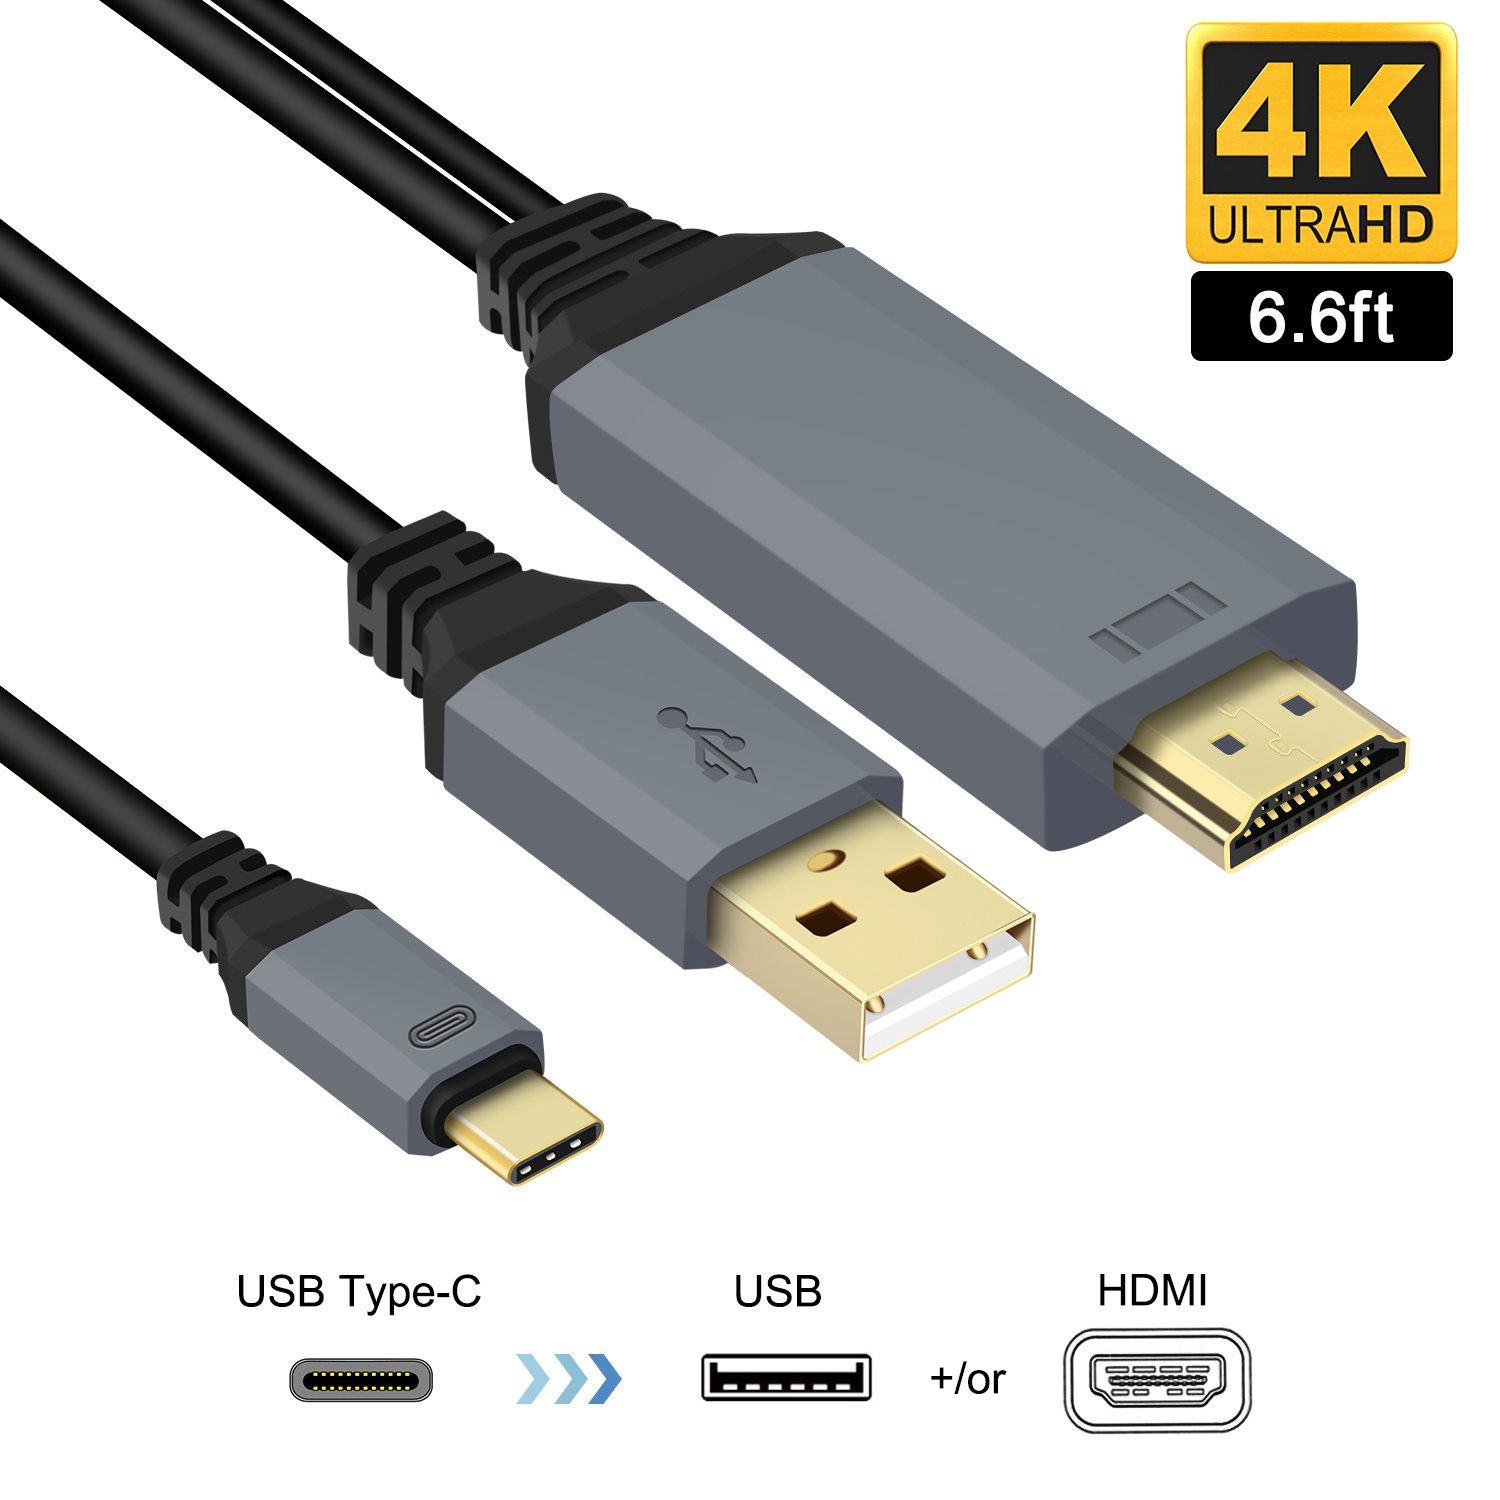 USB C to HDMI Cable Adapter,USB 3.1 Type-C to HDMI 4K with Power Charge Charger Cord 6.6Ft for MacBook Pro 2016/2017,Samsung Galaxy S8/S8+,IMAC Pro 2017,ChromeBook,Dell XPS13,LG G5,Yoga 5 and More